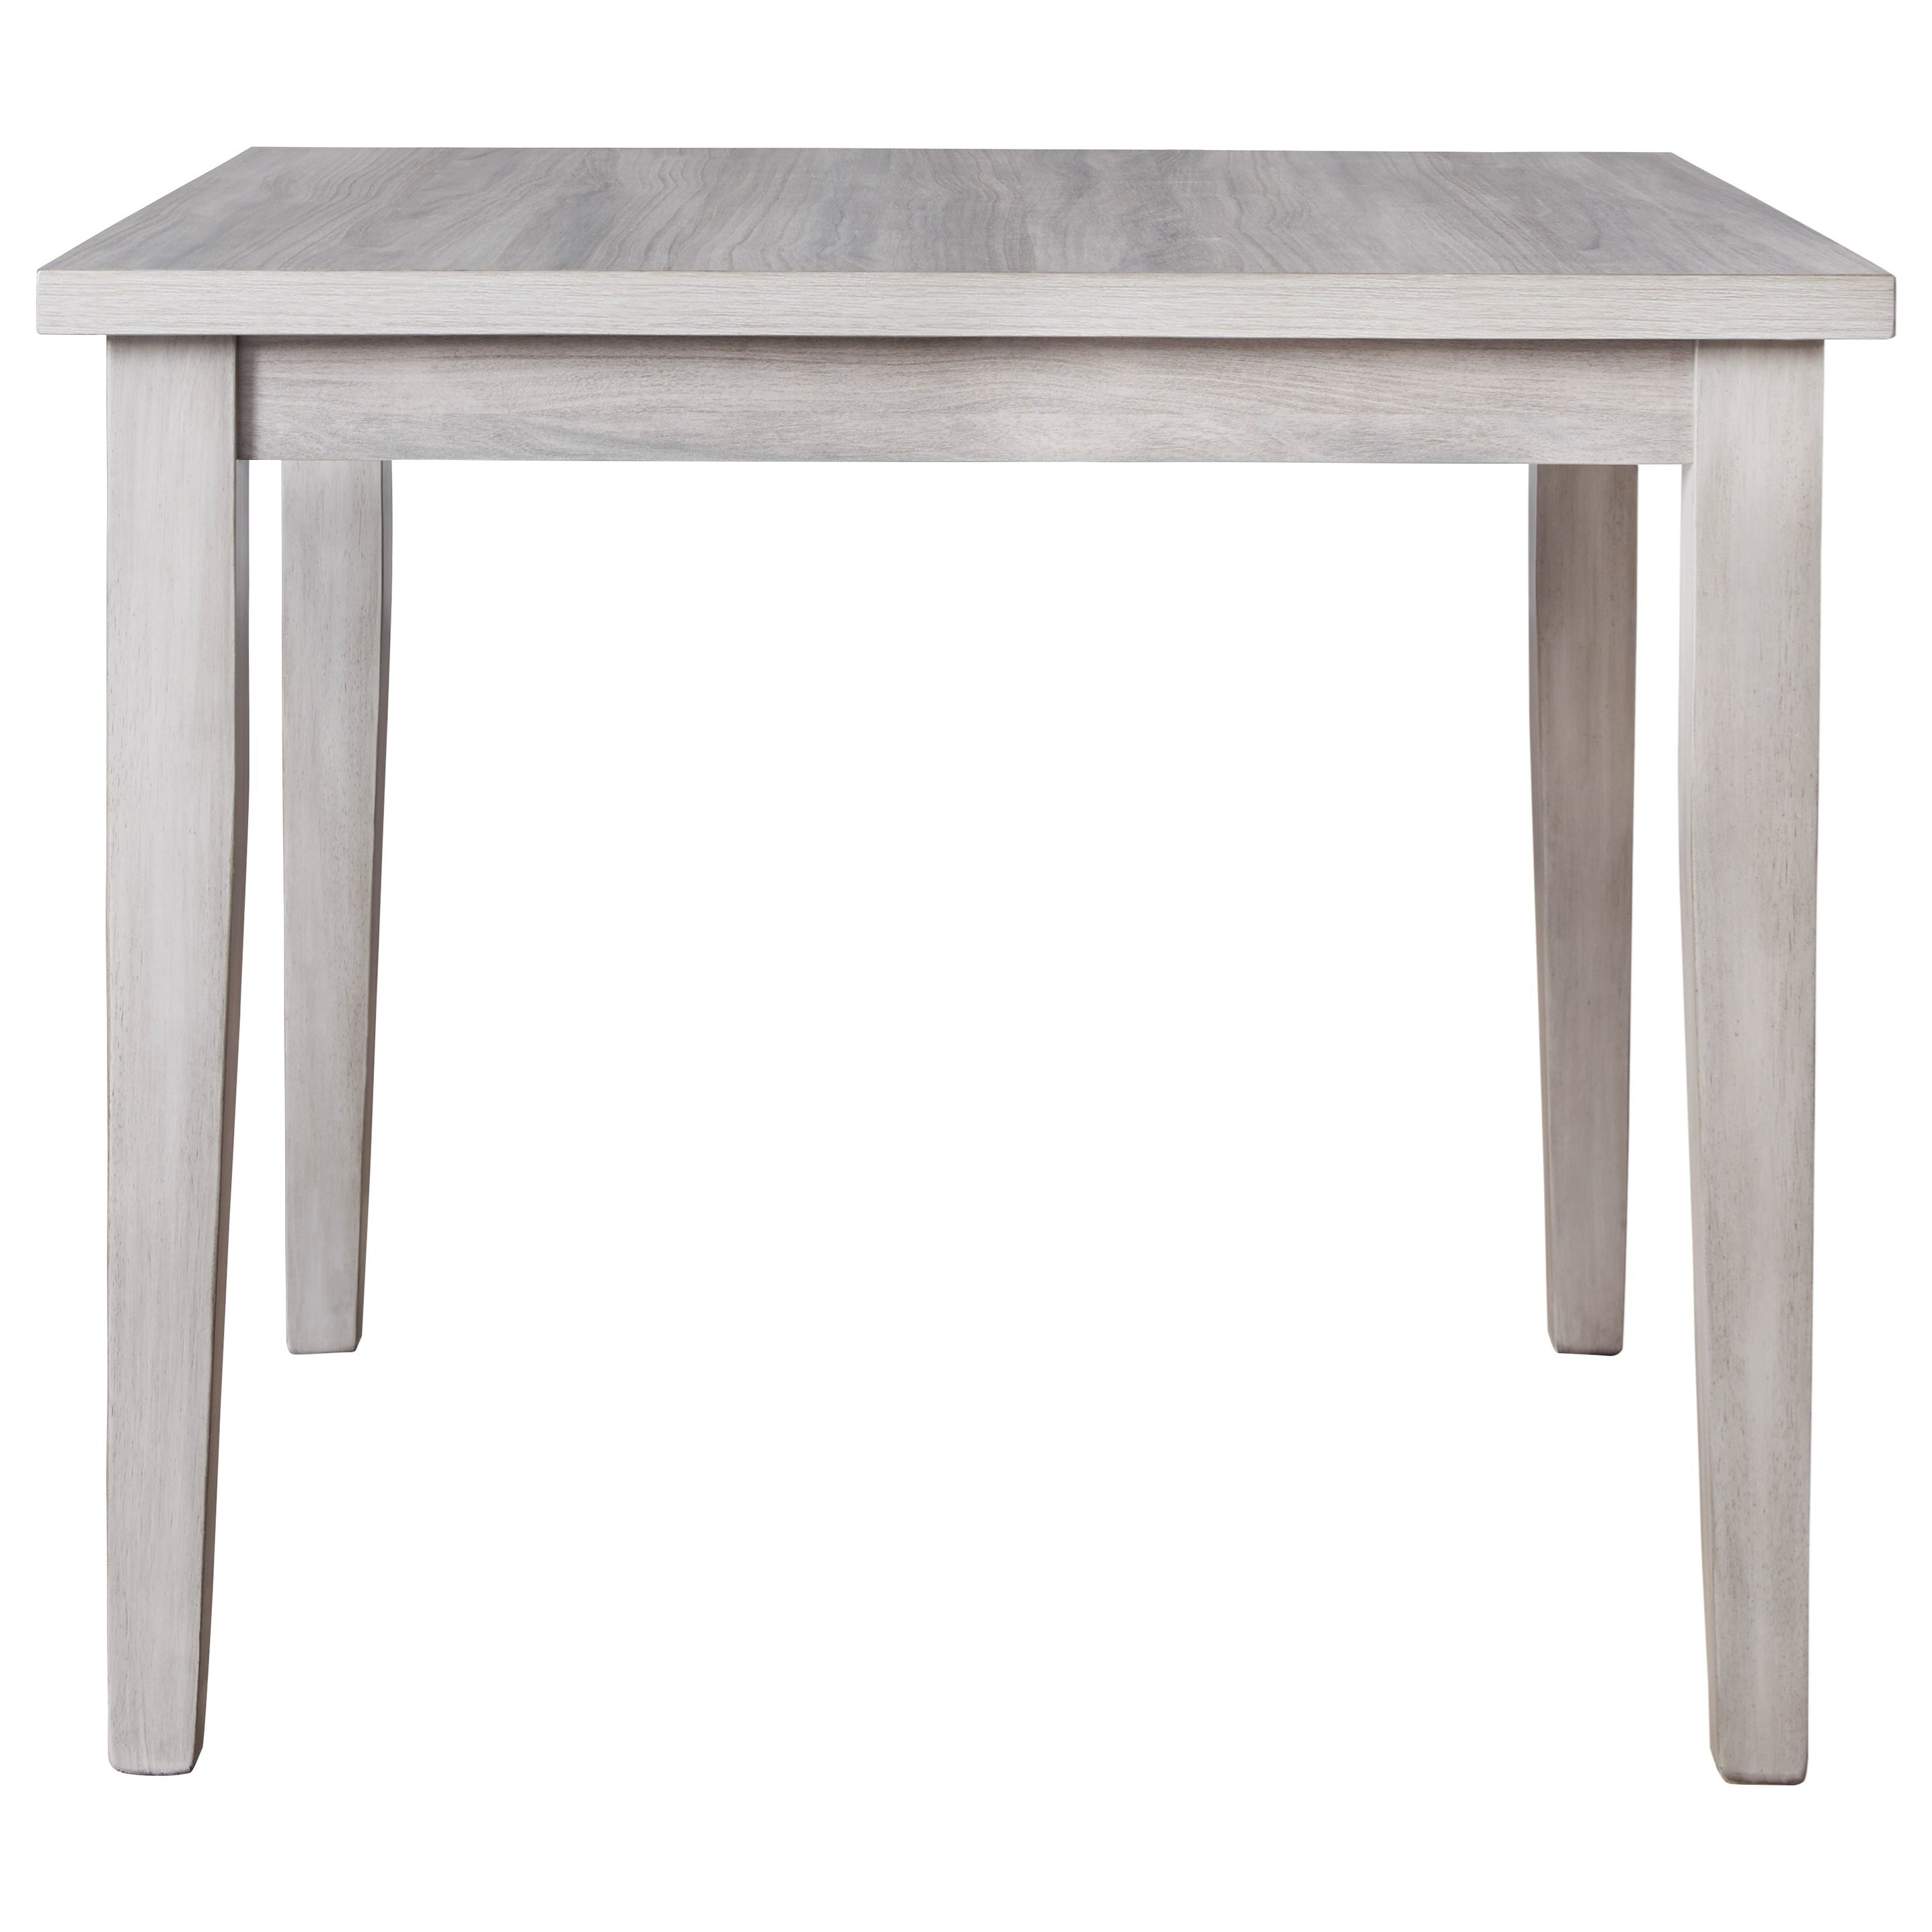 Loratti Loratti Square Dining Room Table by Ashley at Morris Home